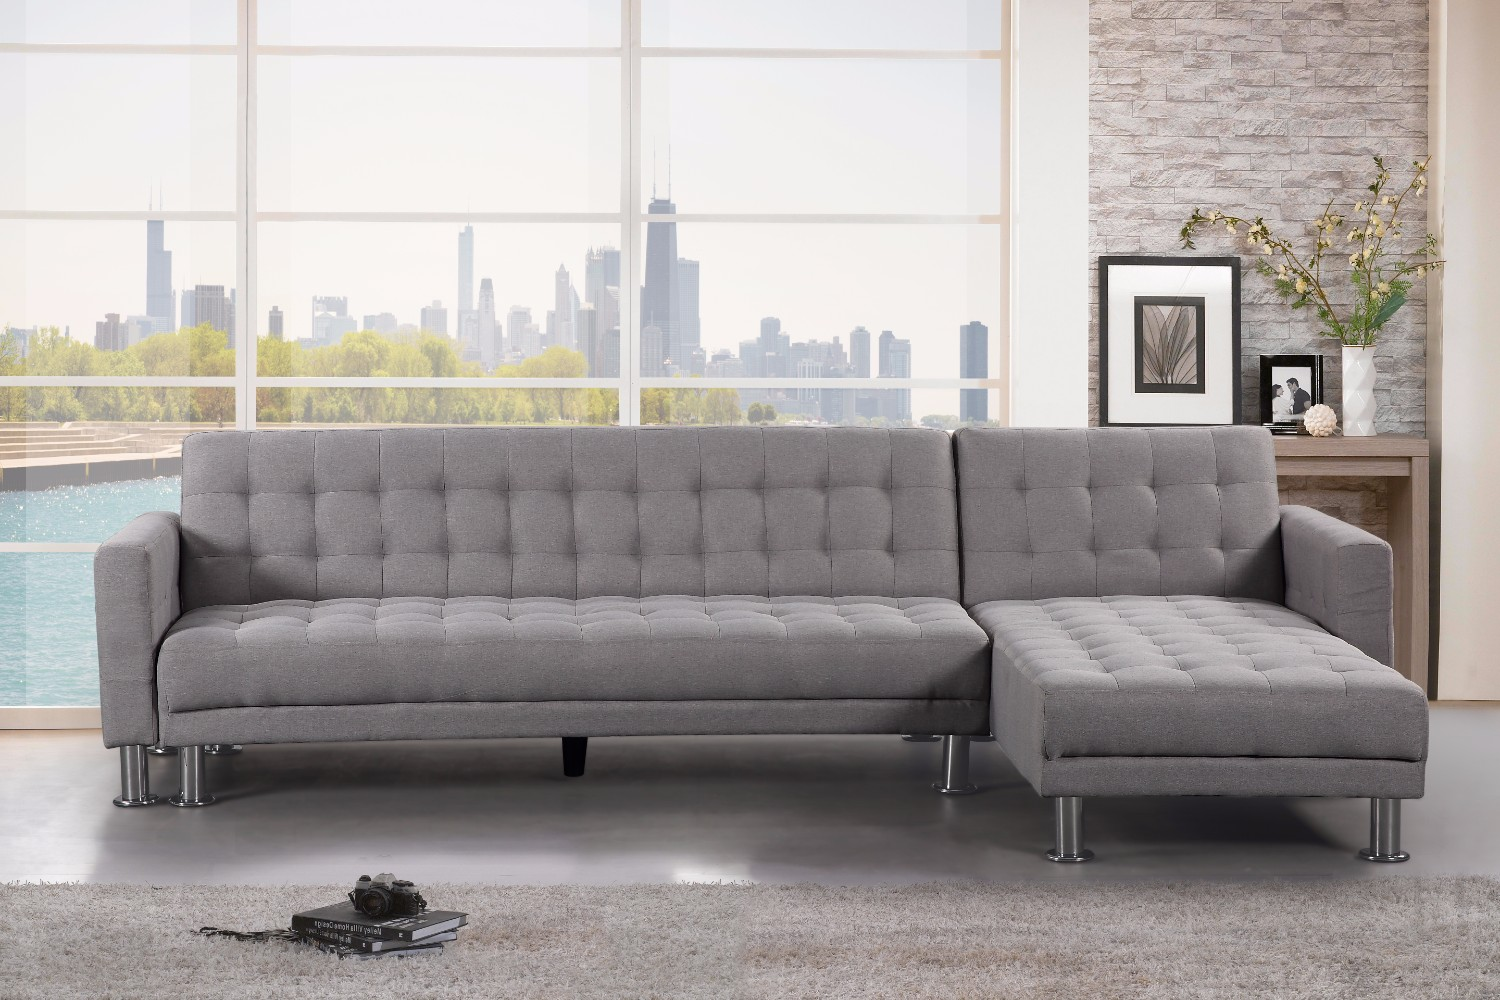 Light Grey Fabric Sectional Sleeper Sofa - ATTALENS